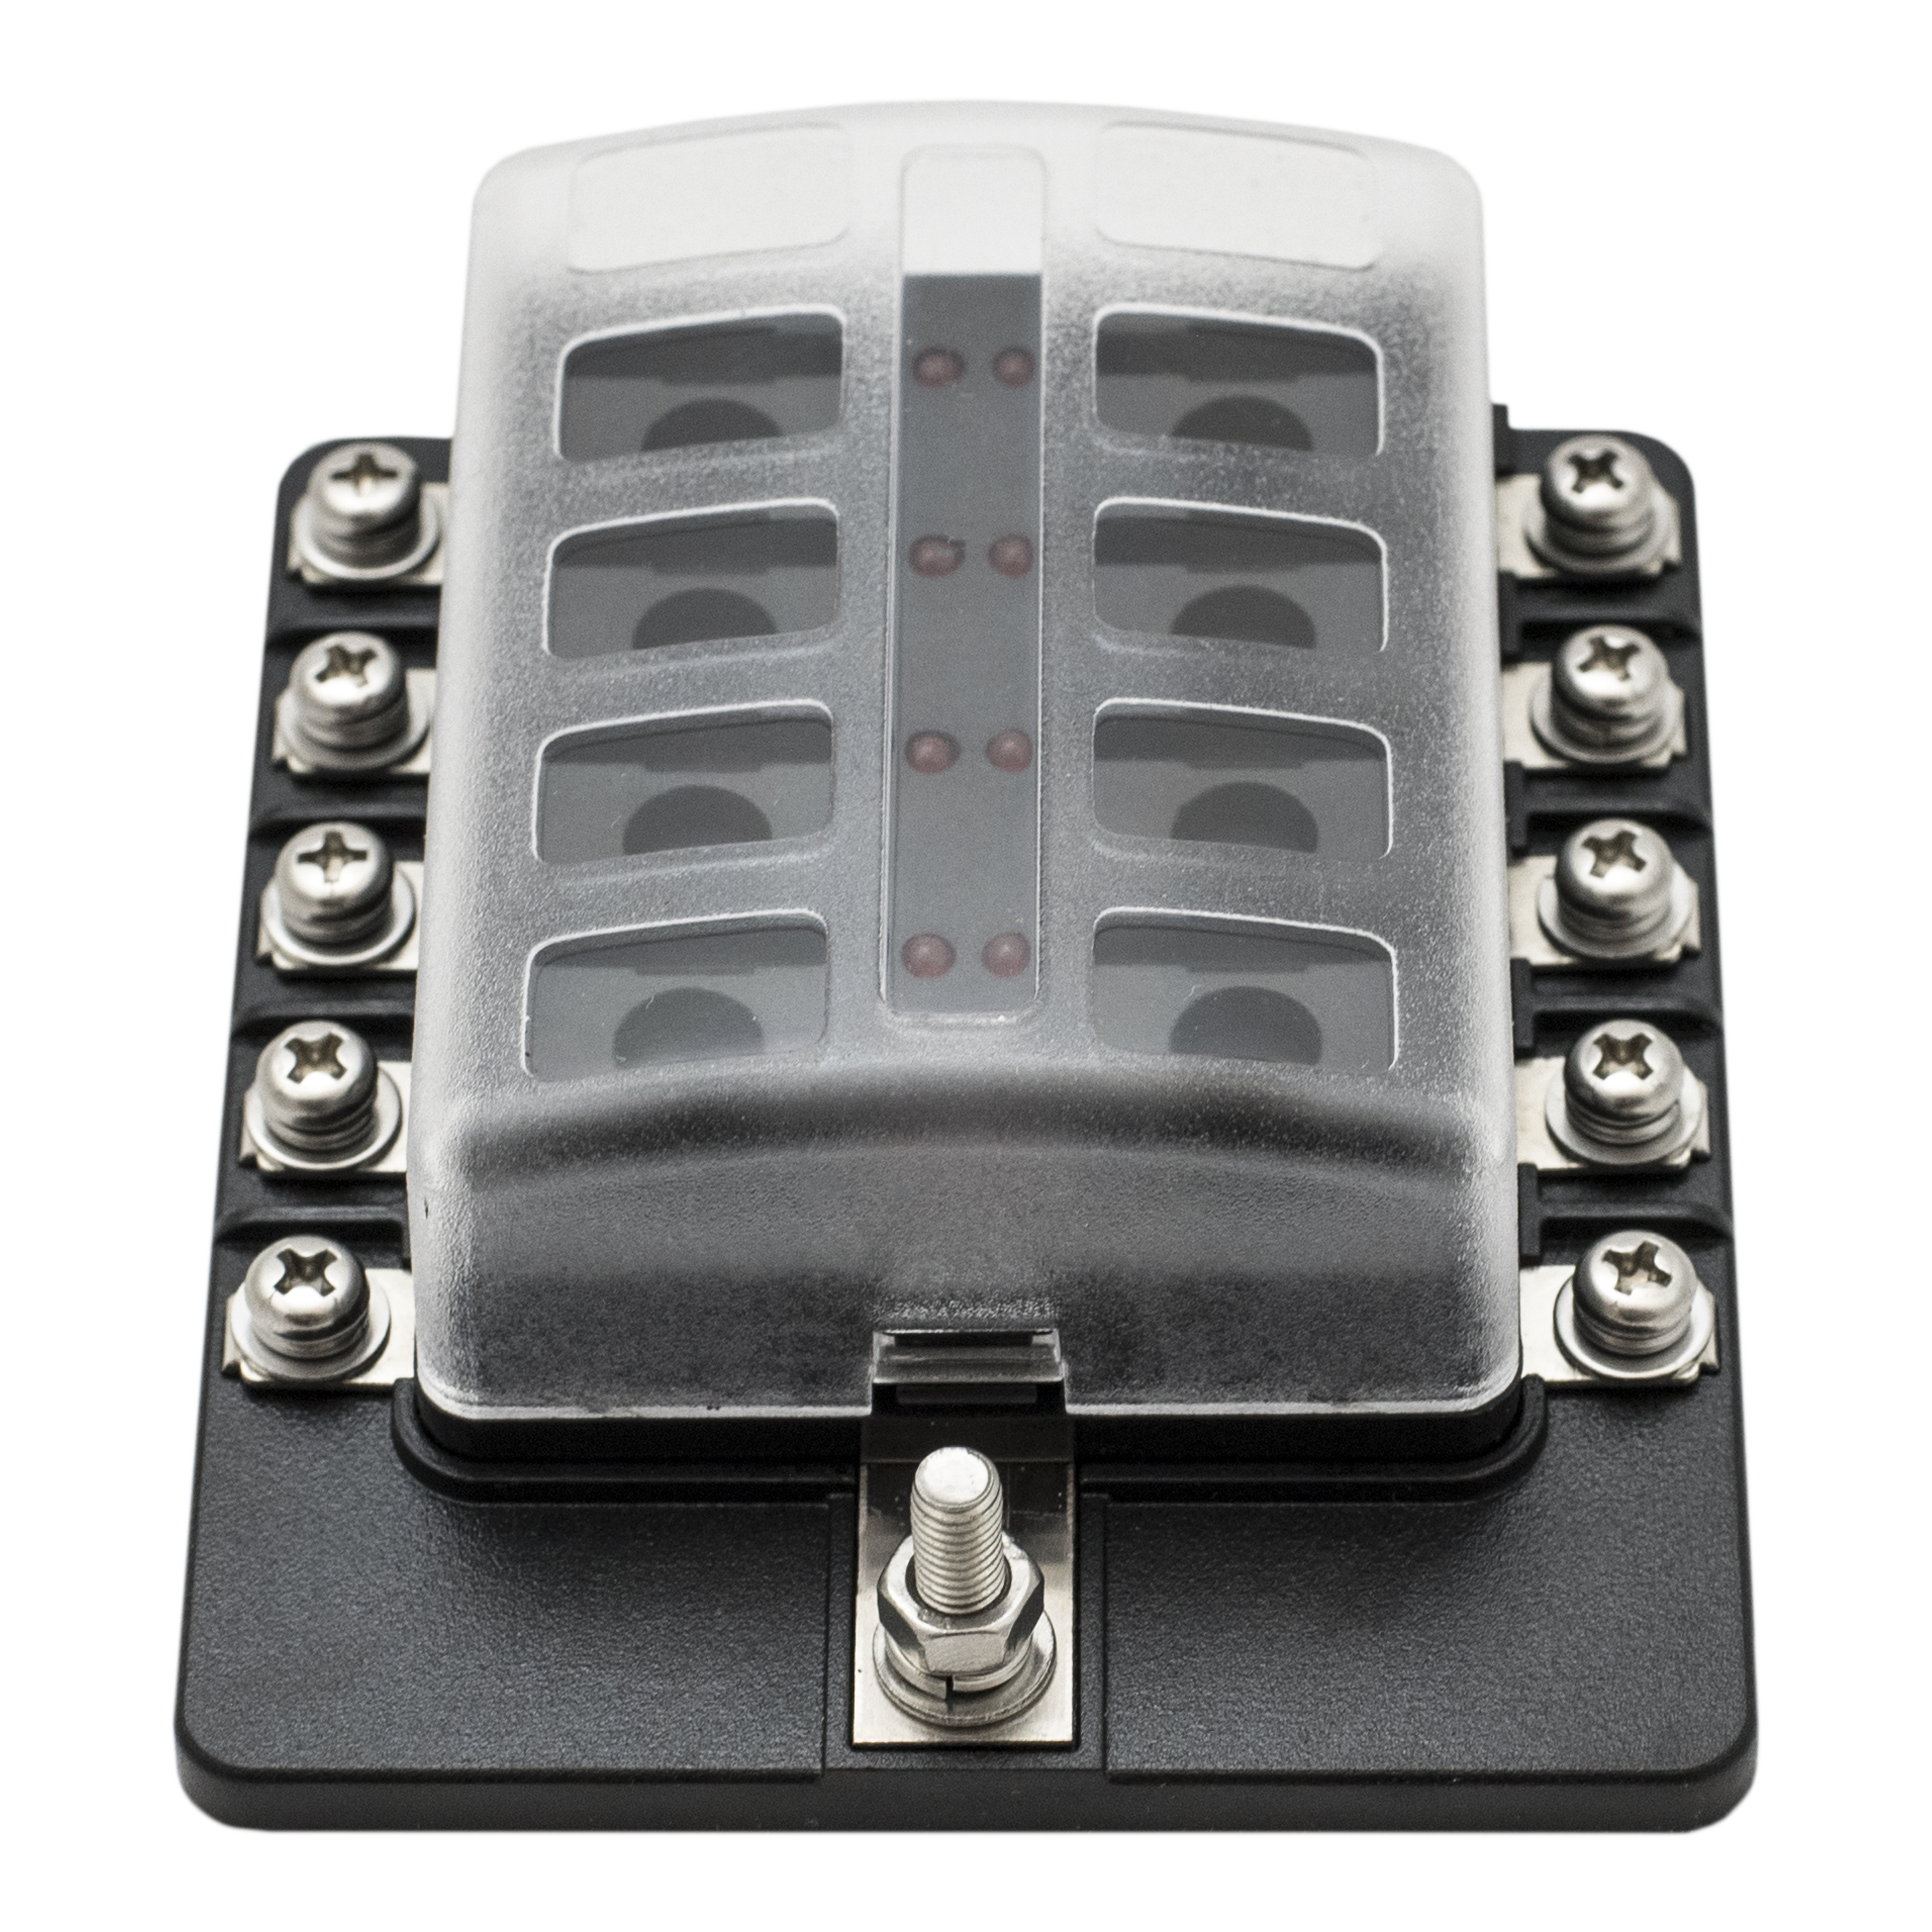 Multi way blade fuse box led indicator for blown